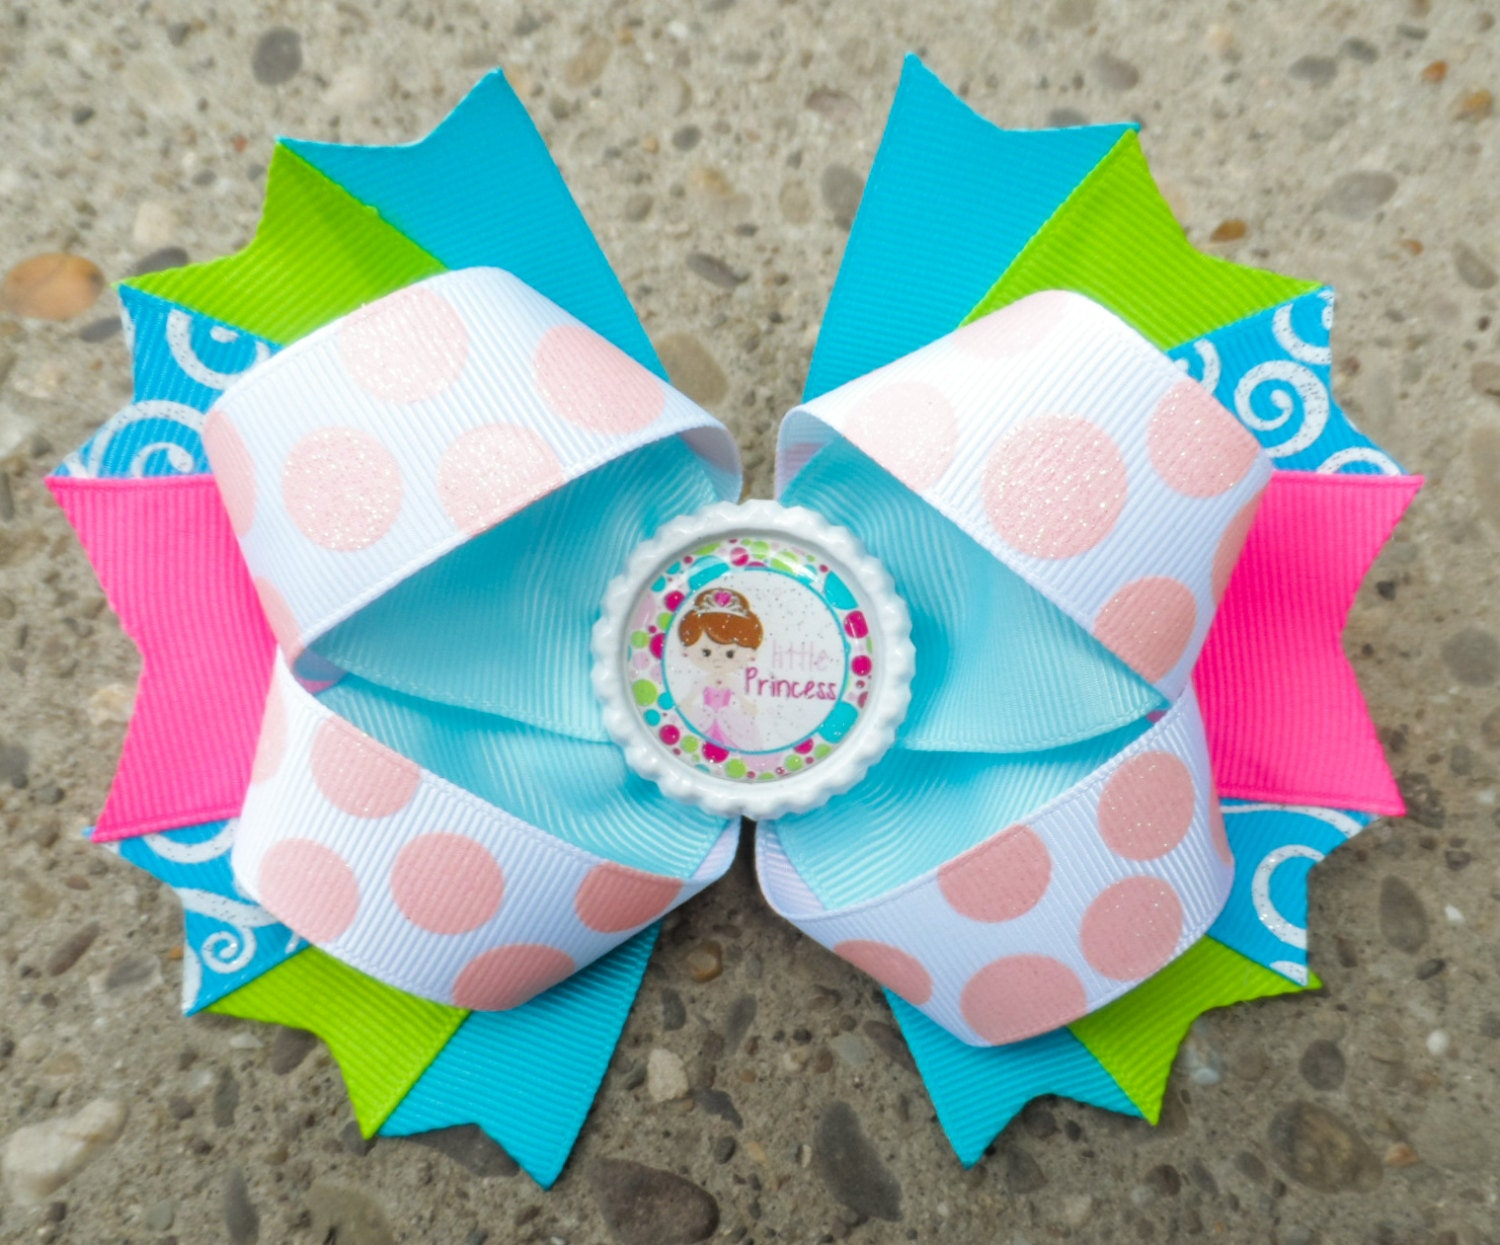 The hair bow company coupon code